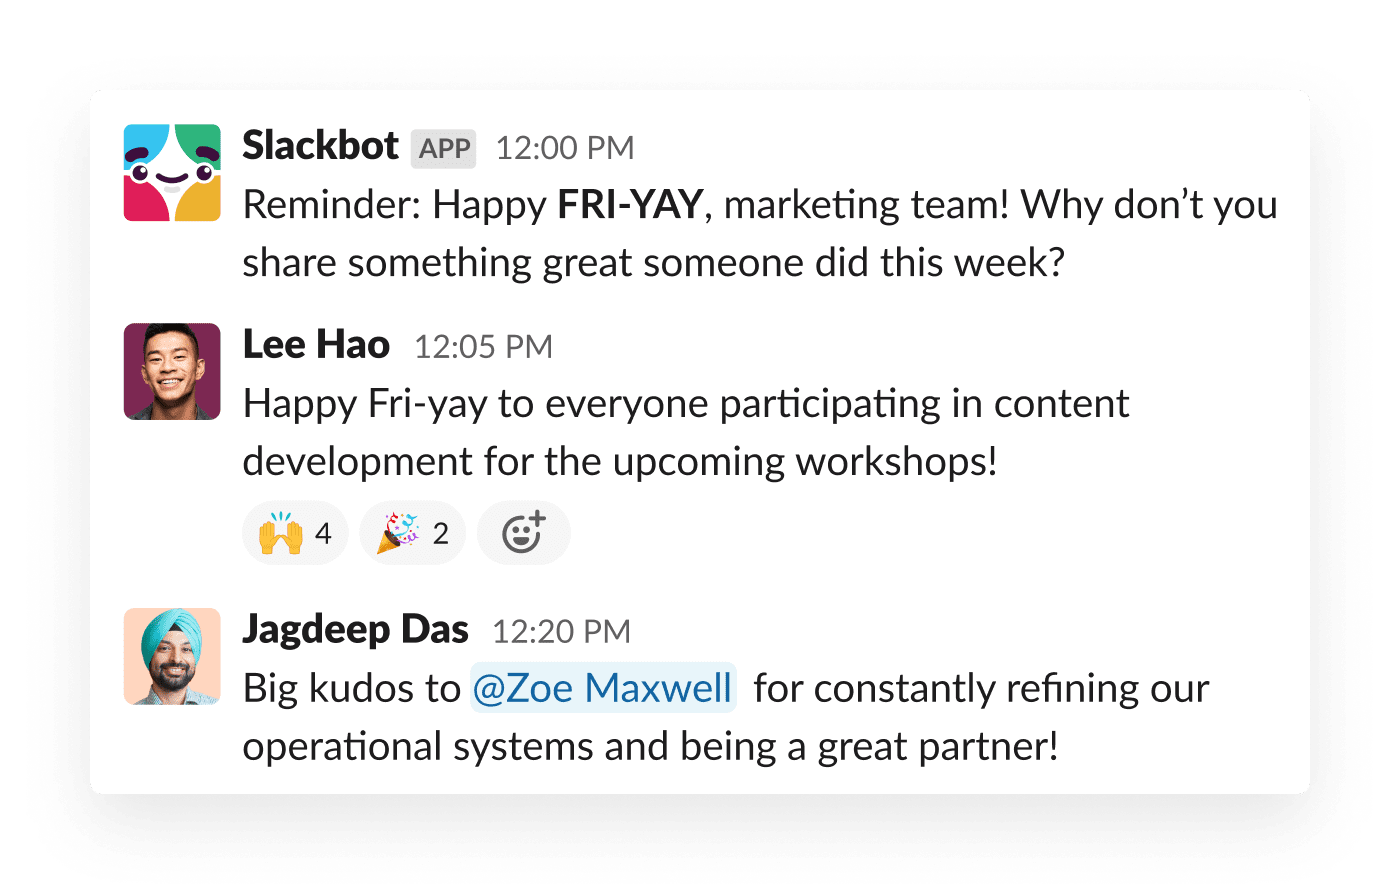 An automated message from Slack prompts teammates to recognize one another's work